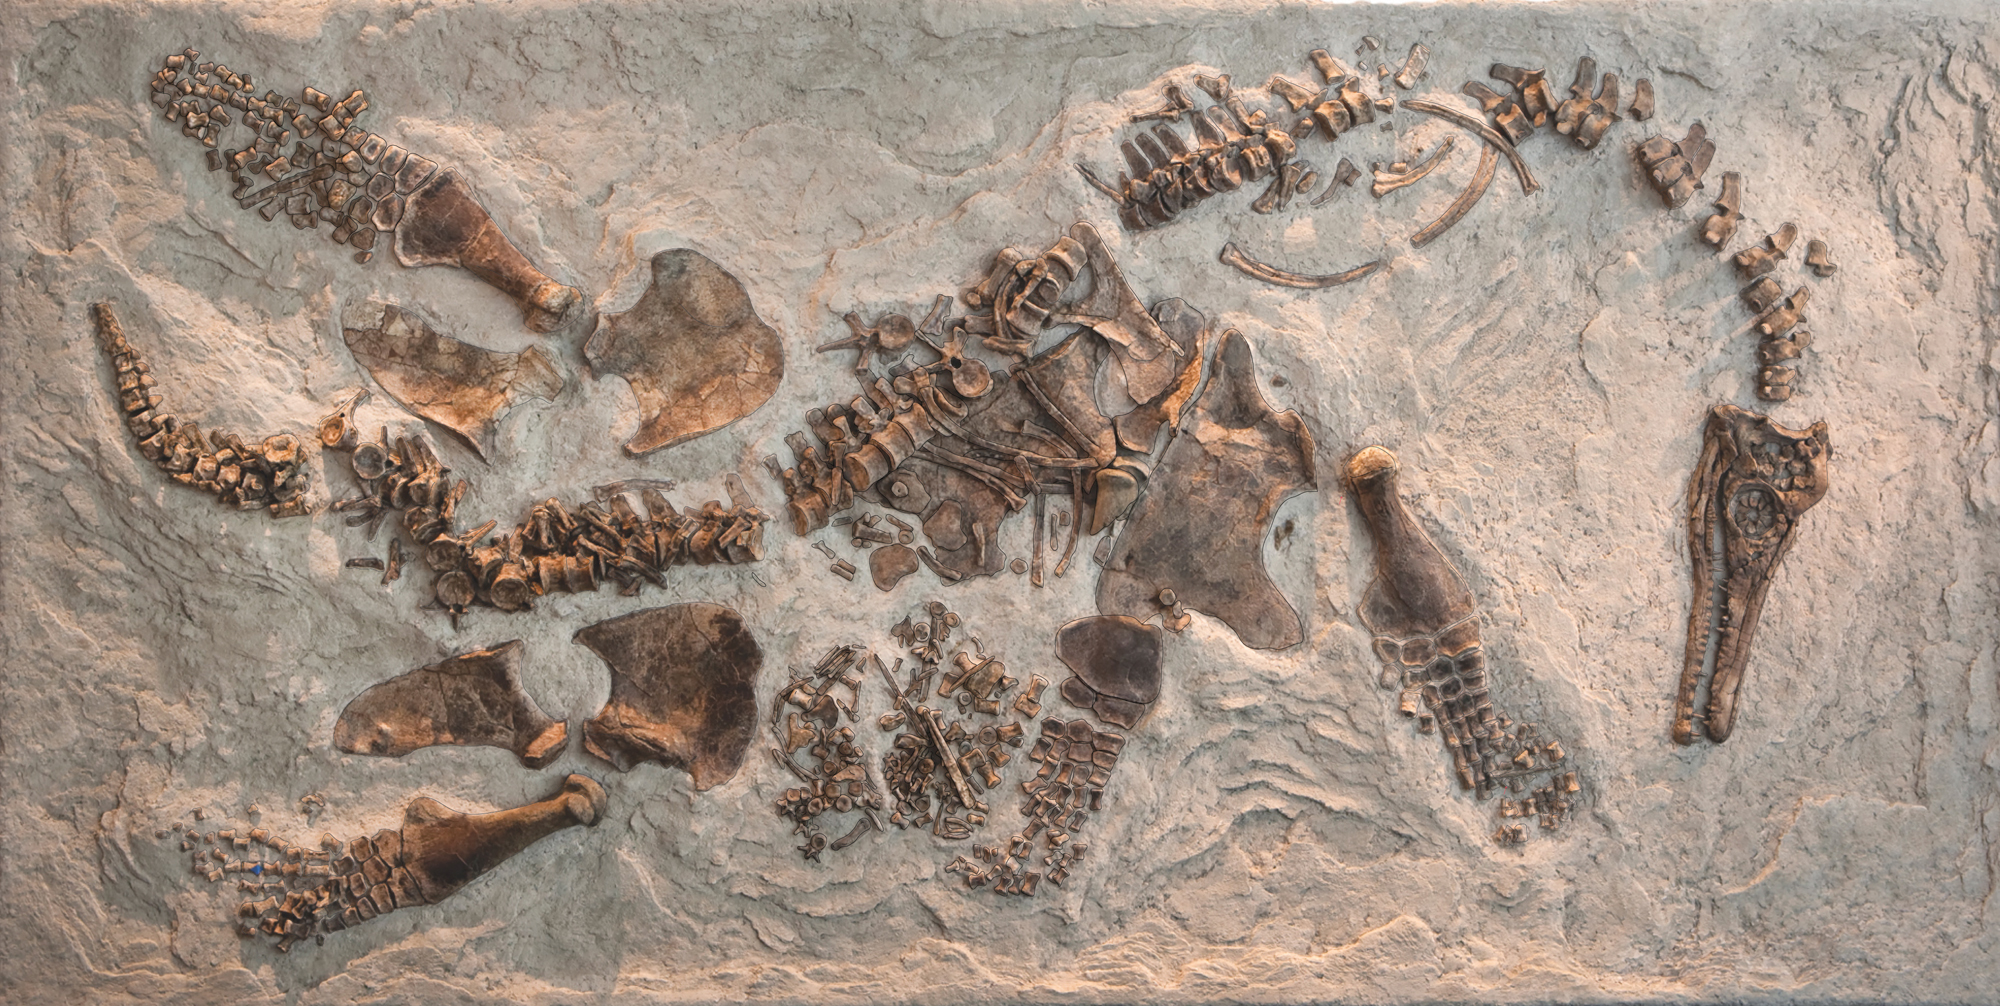 Larger reptile bones, with spine snaking through image, laid out on stone background.